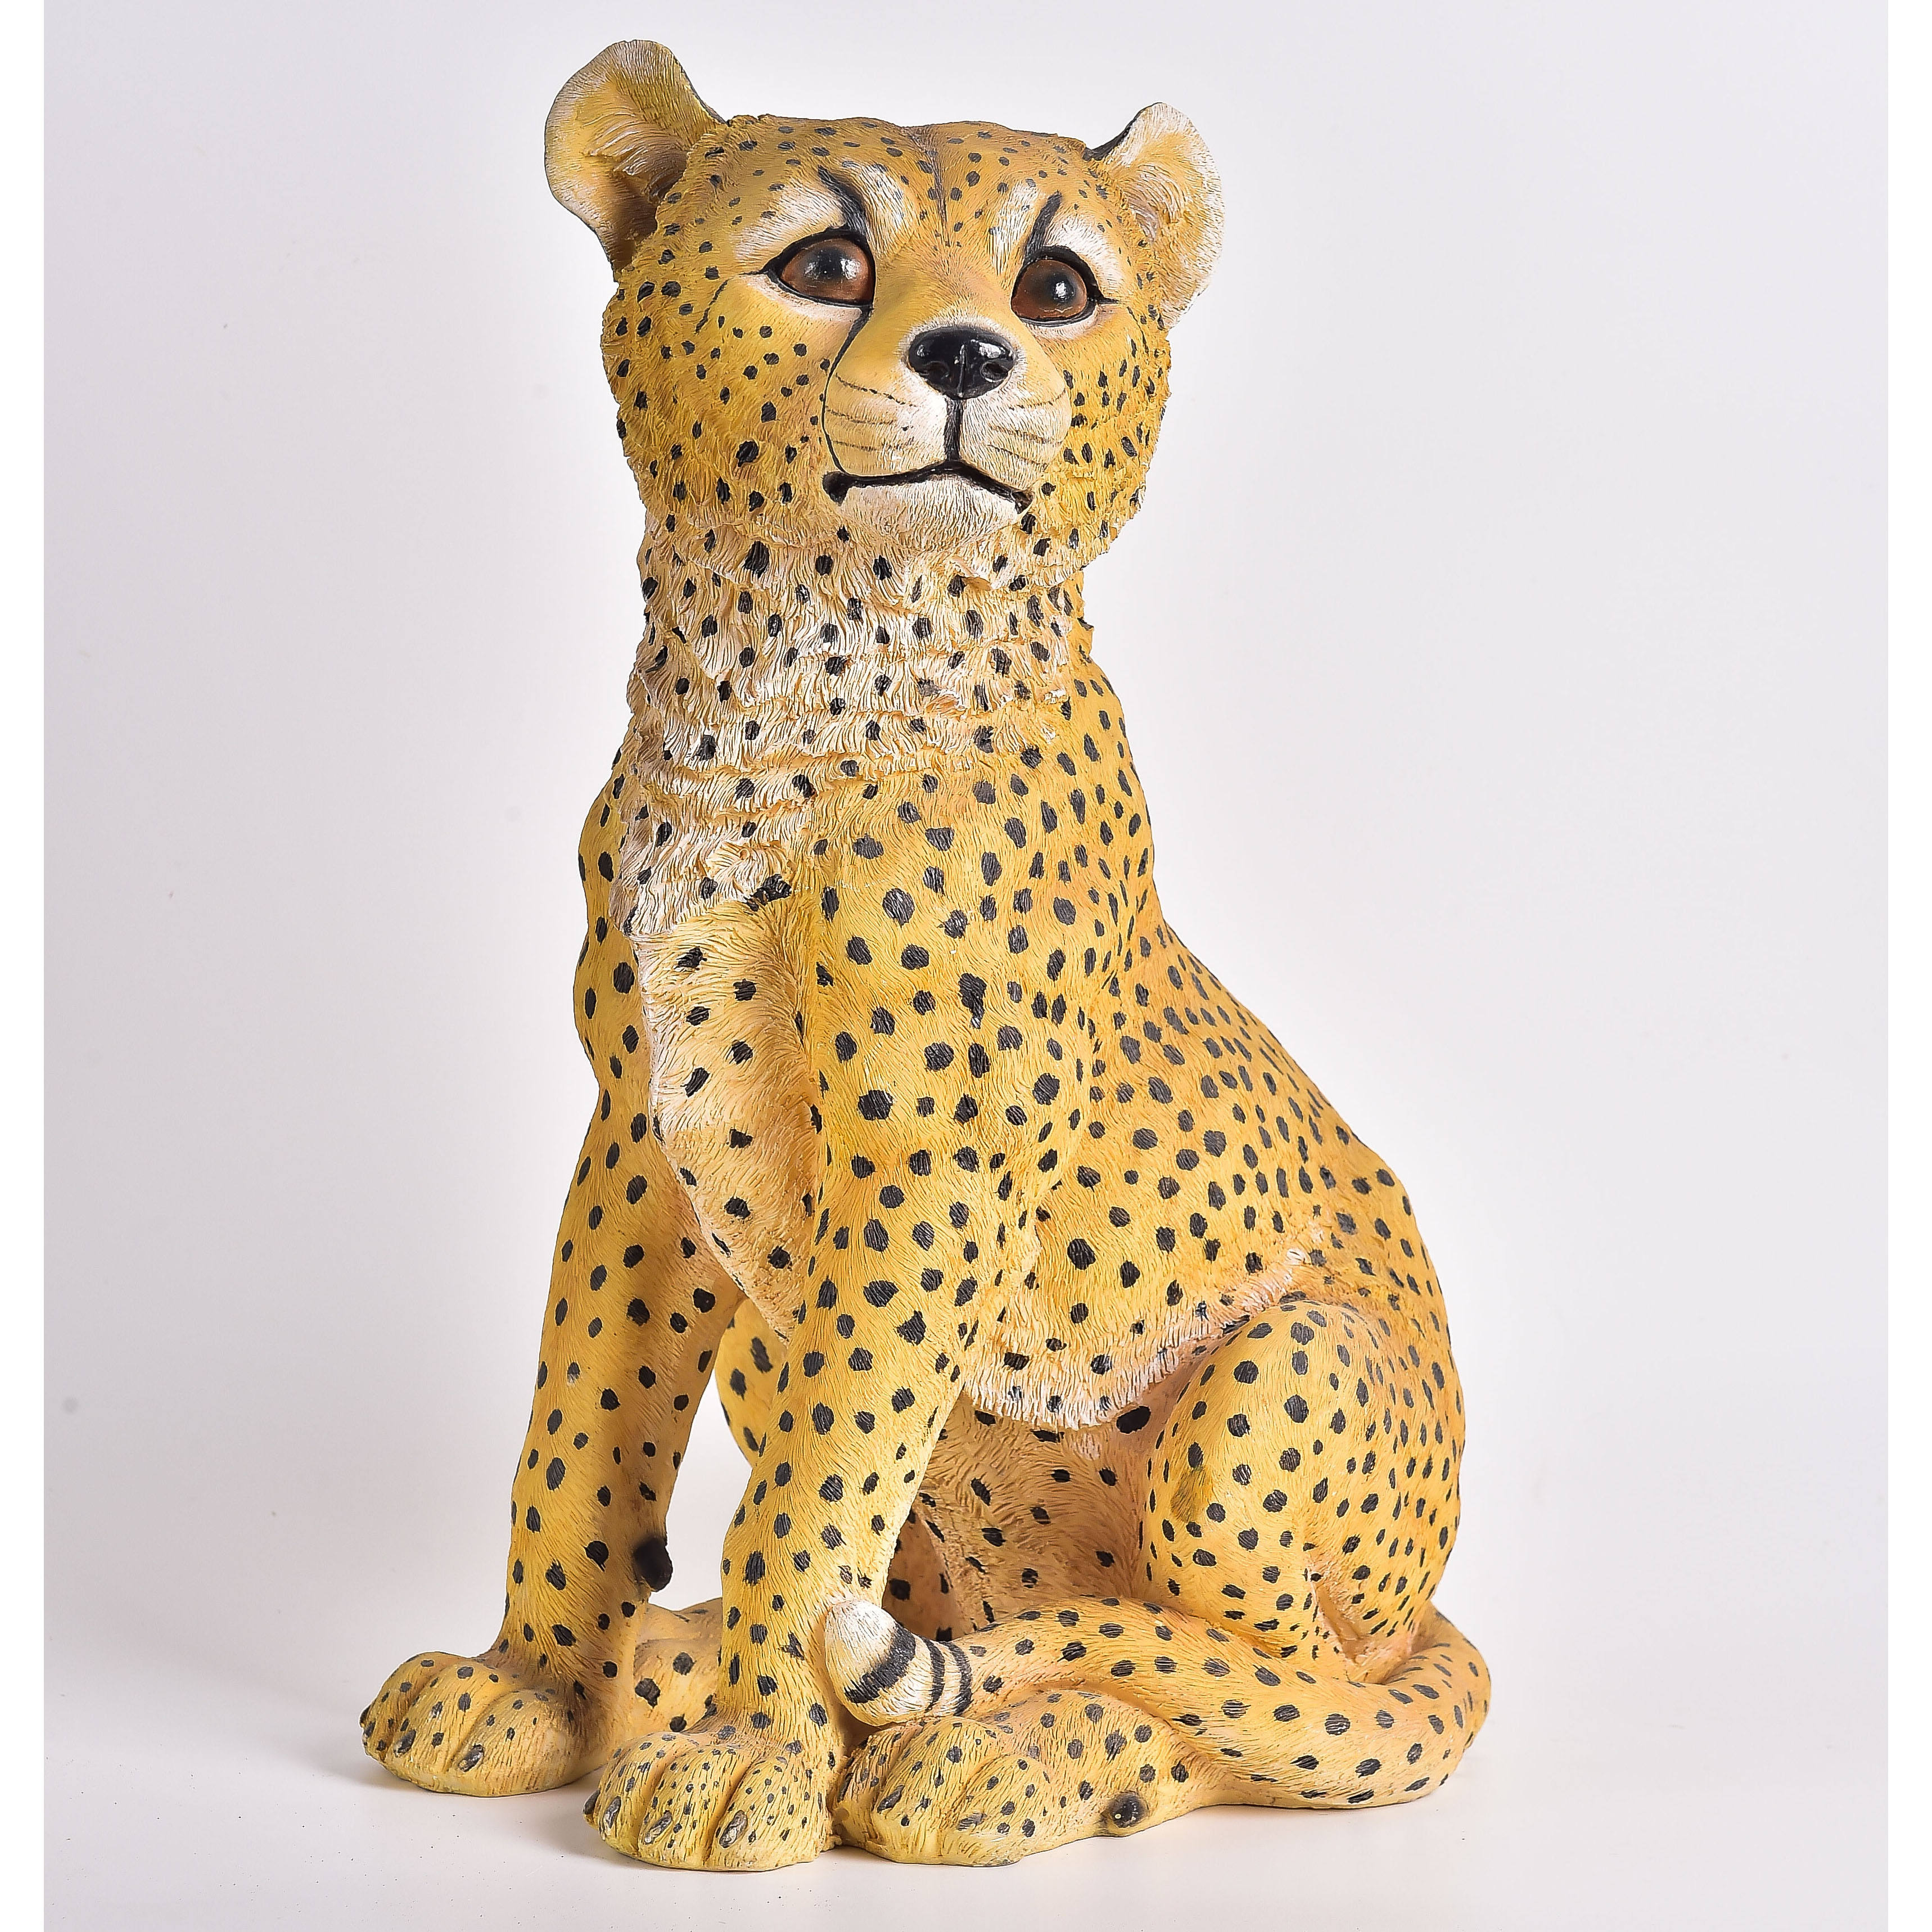 Polyresin material wild animal wholesale resin leopard figurines